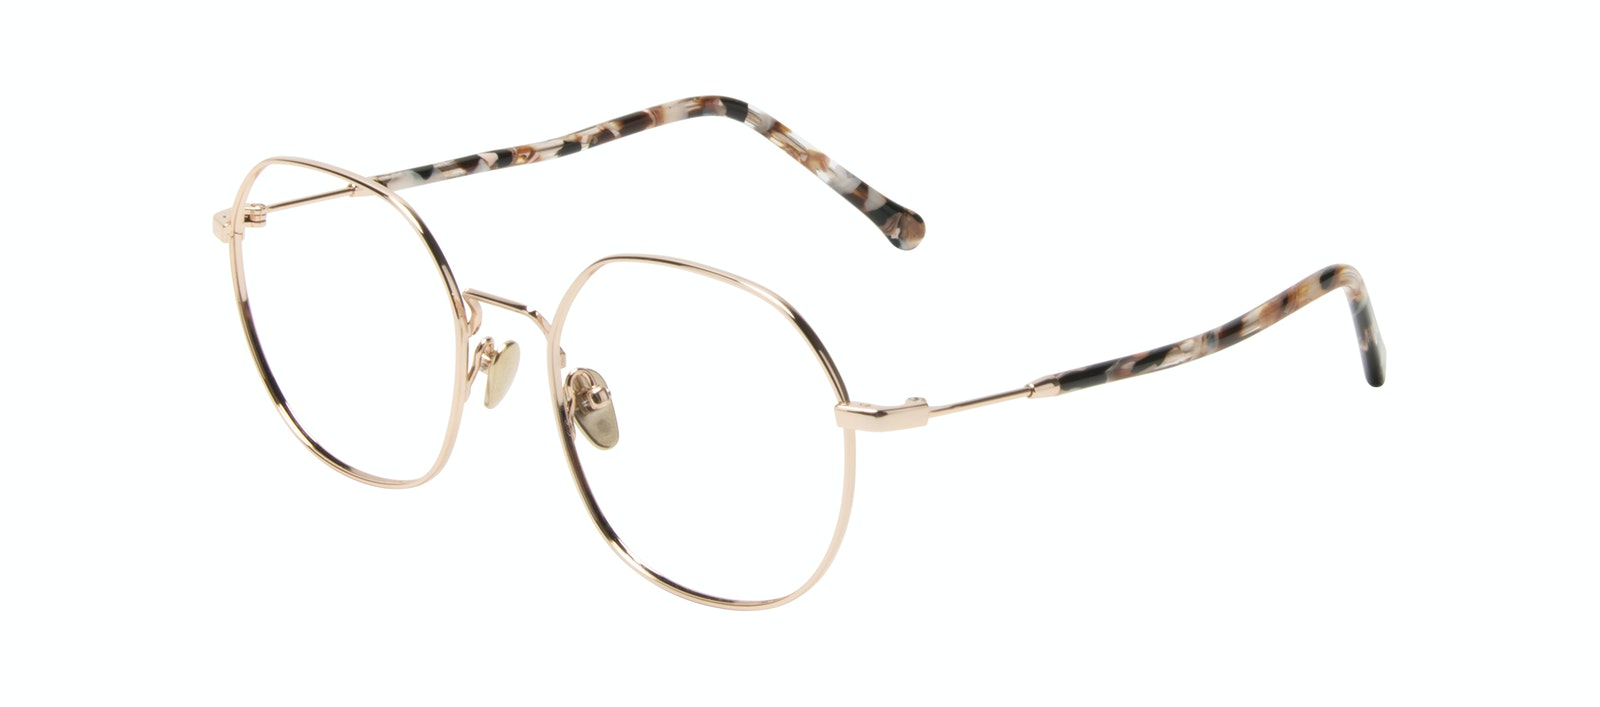 Affordable Fashion Glasses Round Eyeglasses Women Coco Gold Tilt